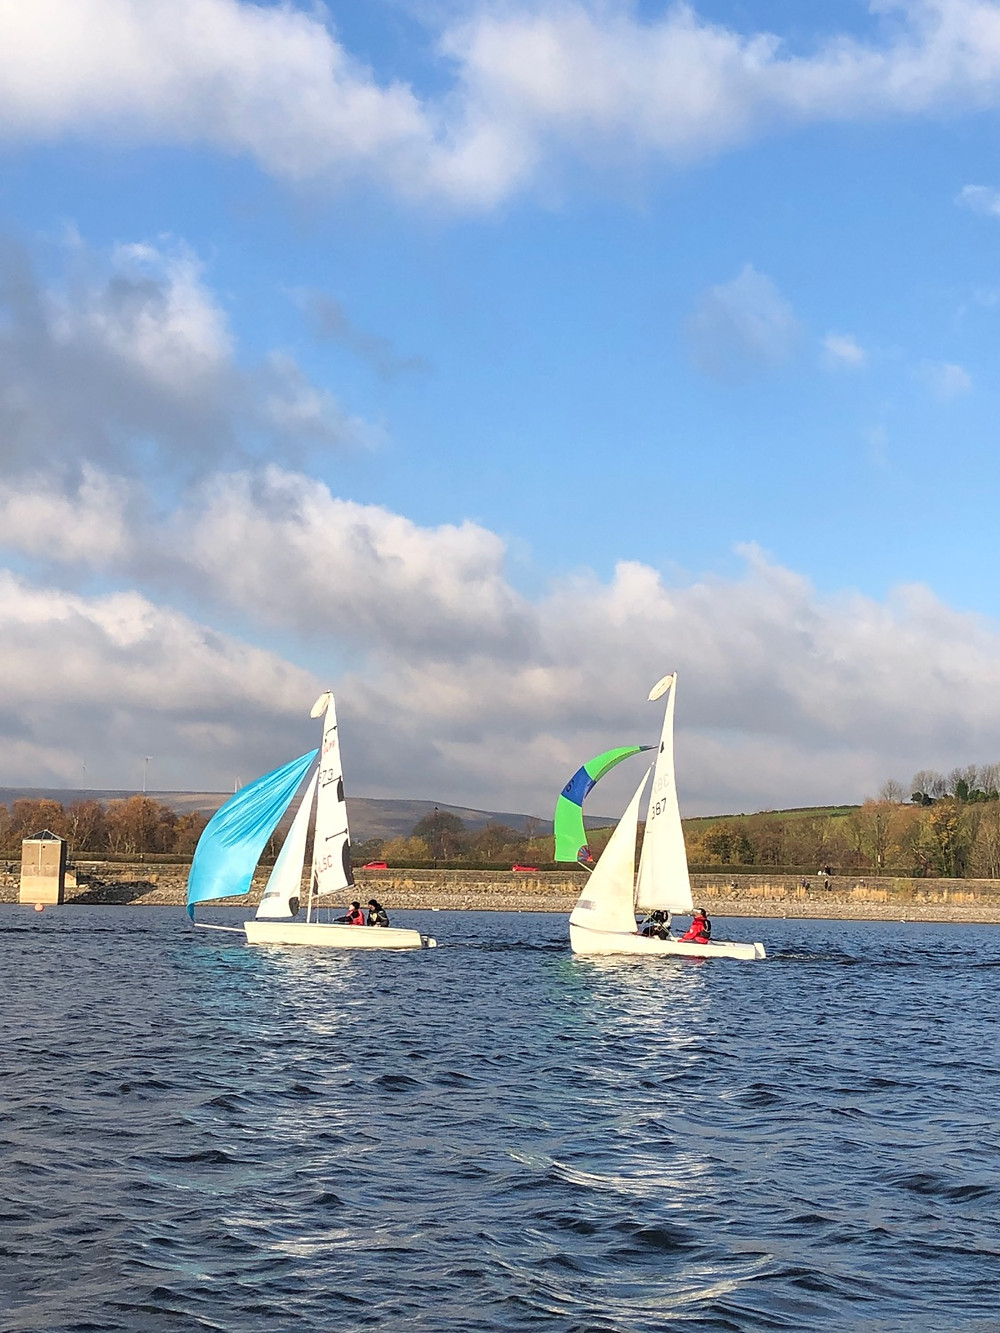 Laser 200 with kite up and GP14 behind with kite up.